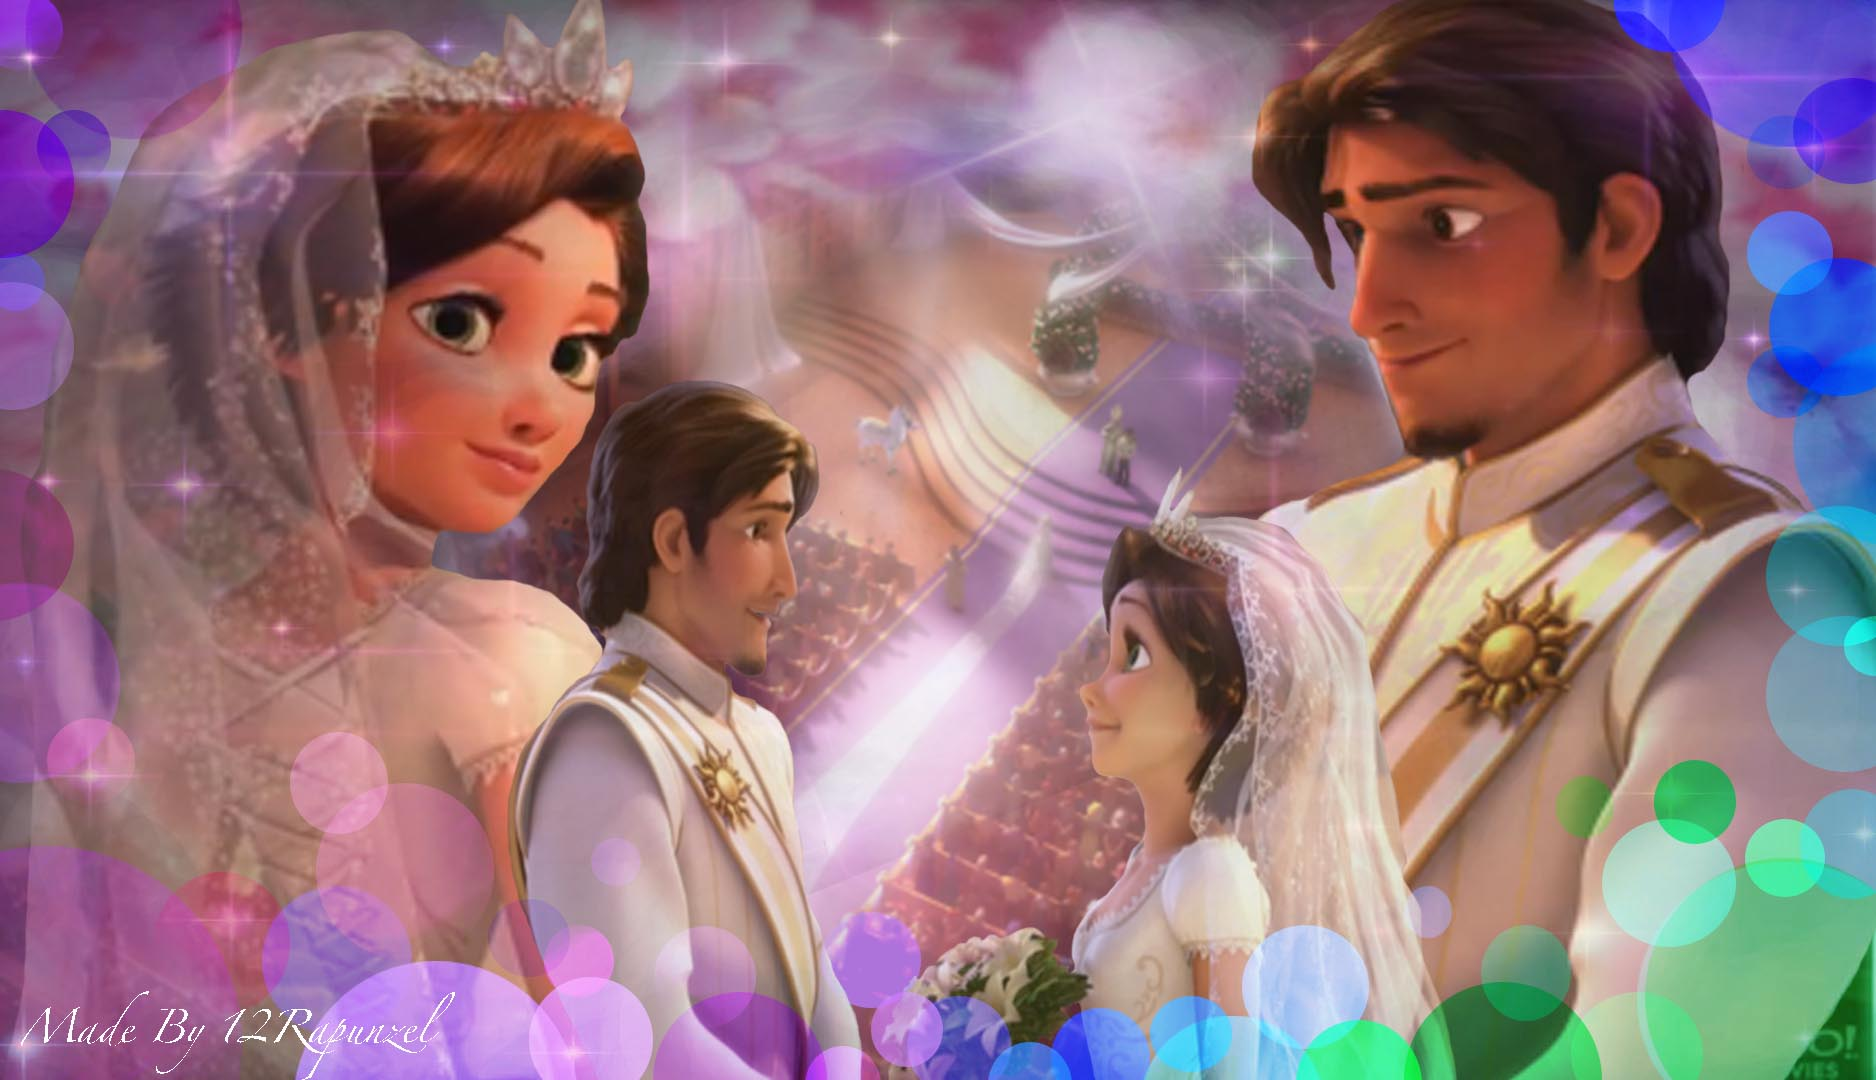 https://i0.wp.com/images5.fanpop.com/image/photos/30200000/Tangled-Ever-After-Wedding-rapunzel-fitzherbert-art-12rapunzel-30270107-1876-1080.jpg